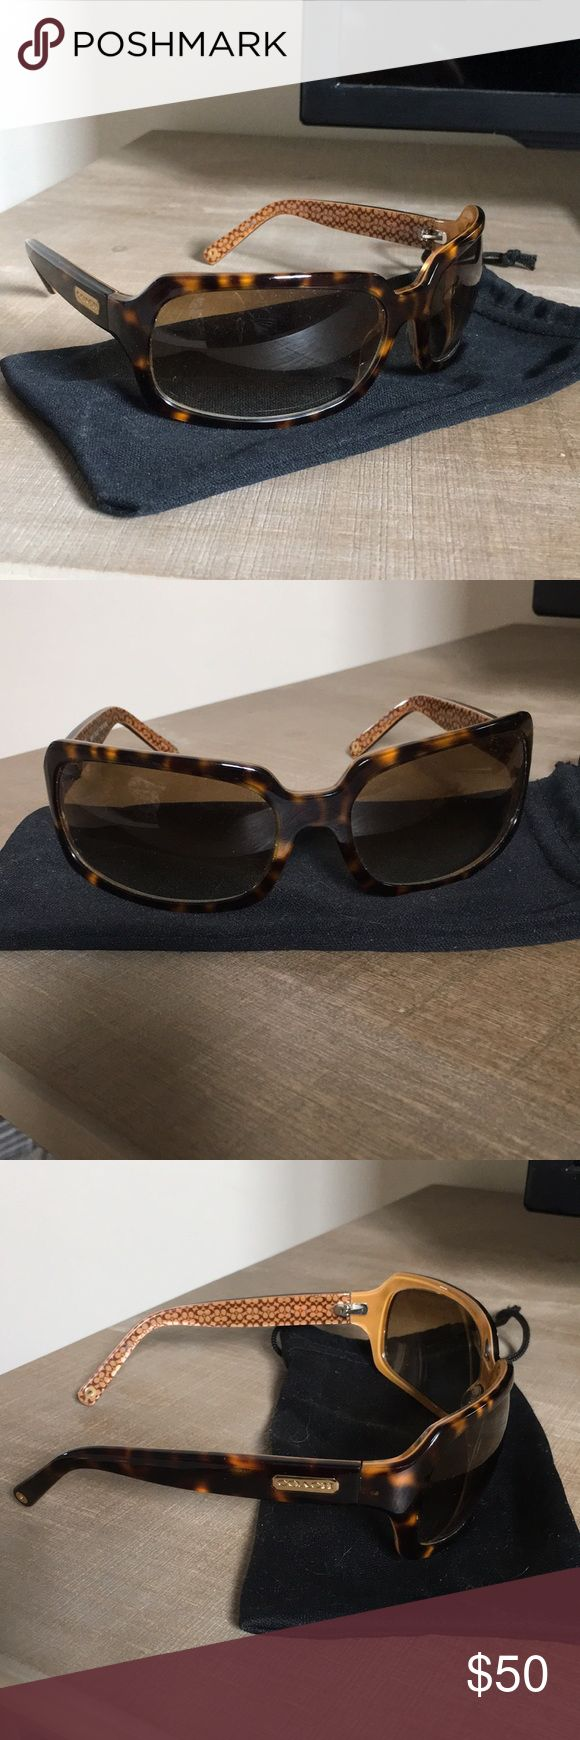 Coach Sunglasses Coach women's sunglasses. Brown tortoise shell frames with see-through golden lenses. Coach Accessories Glasses